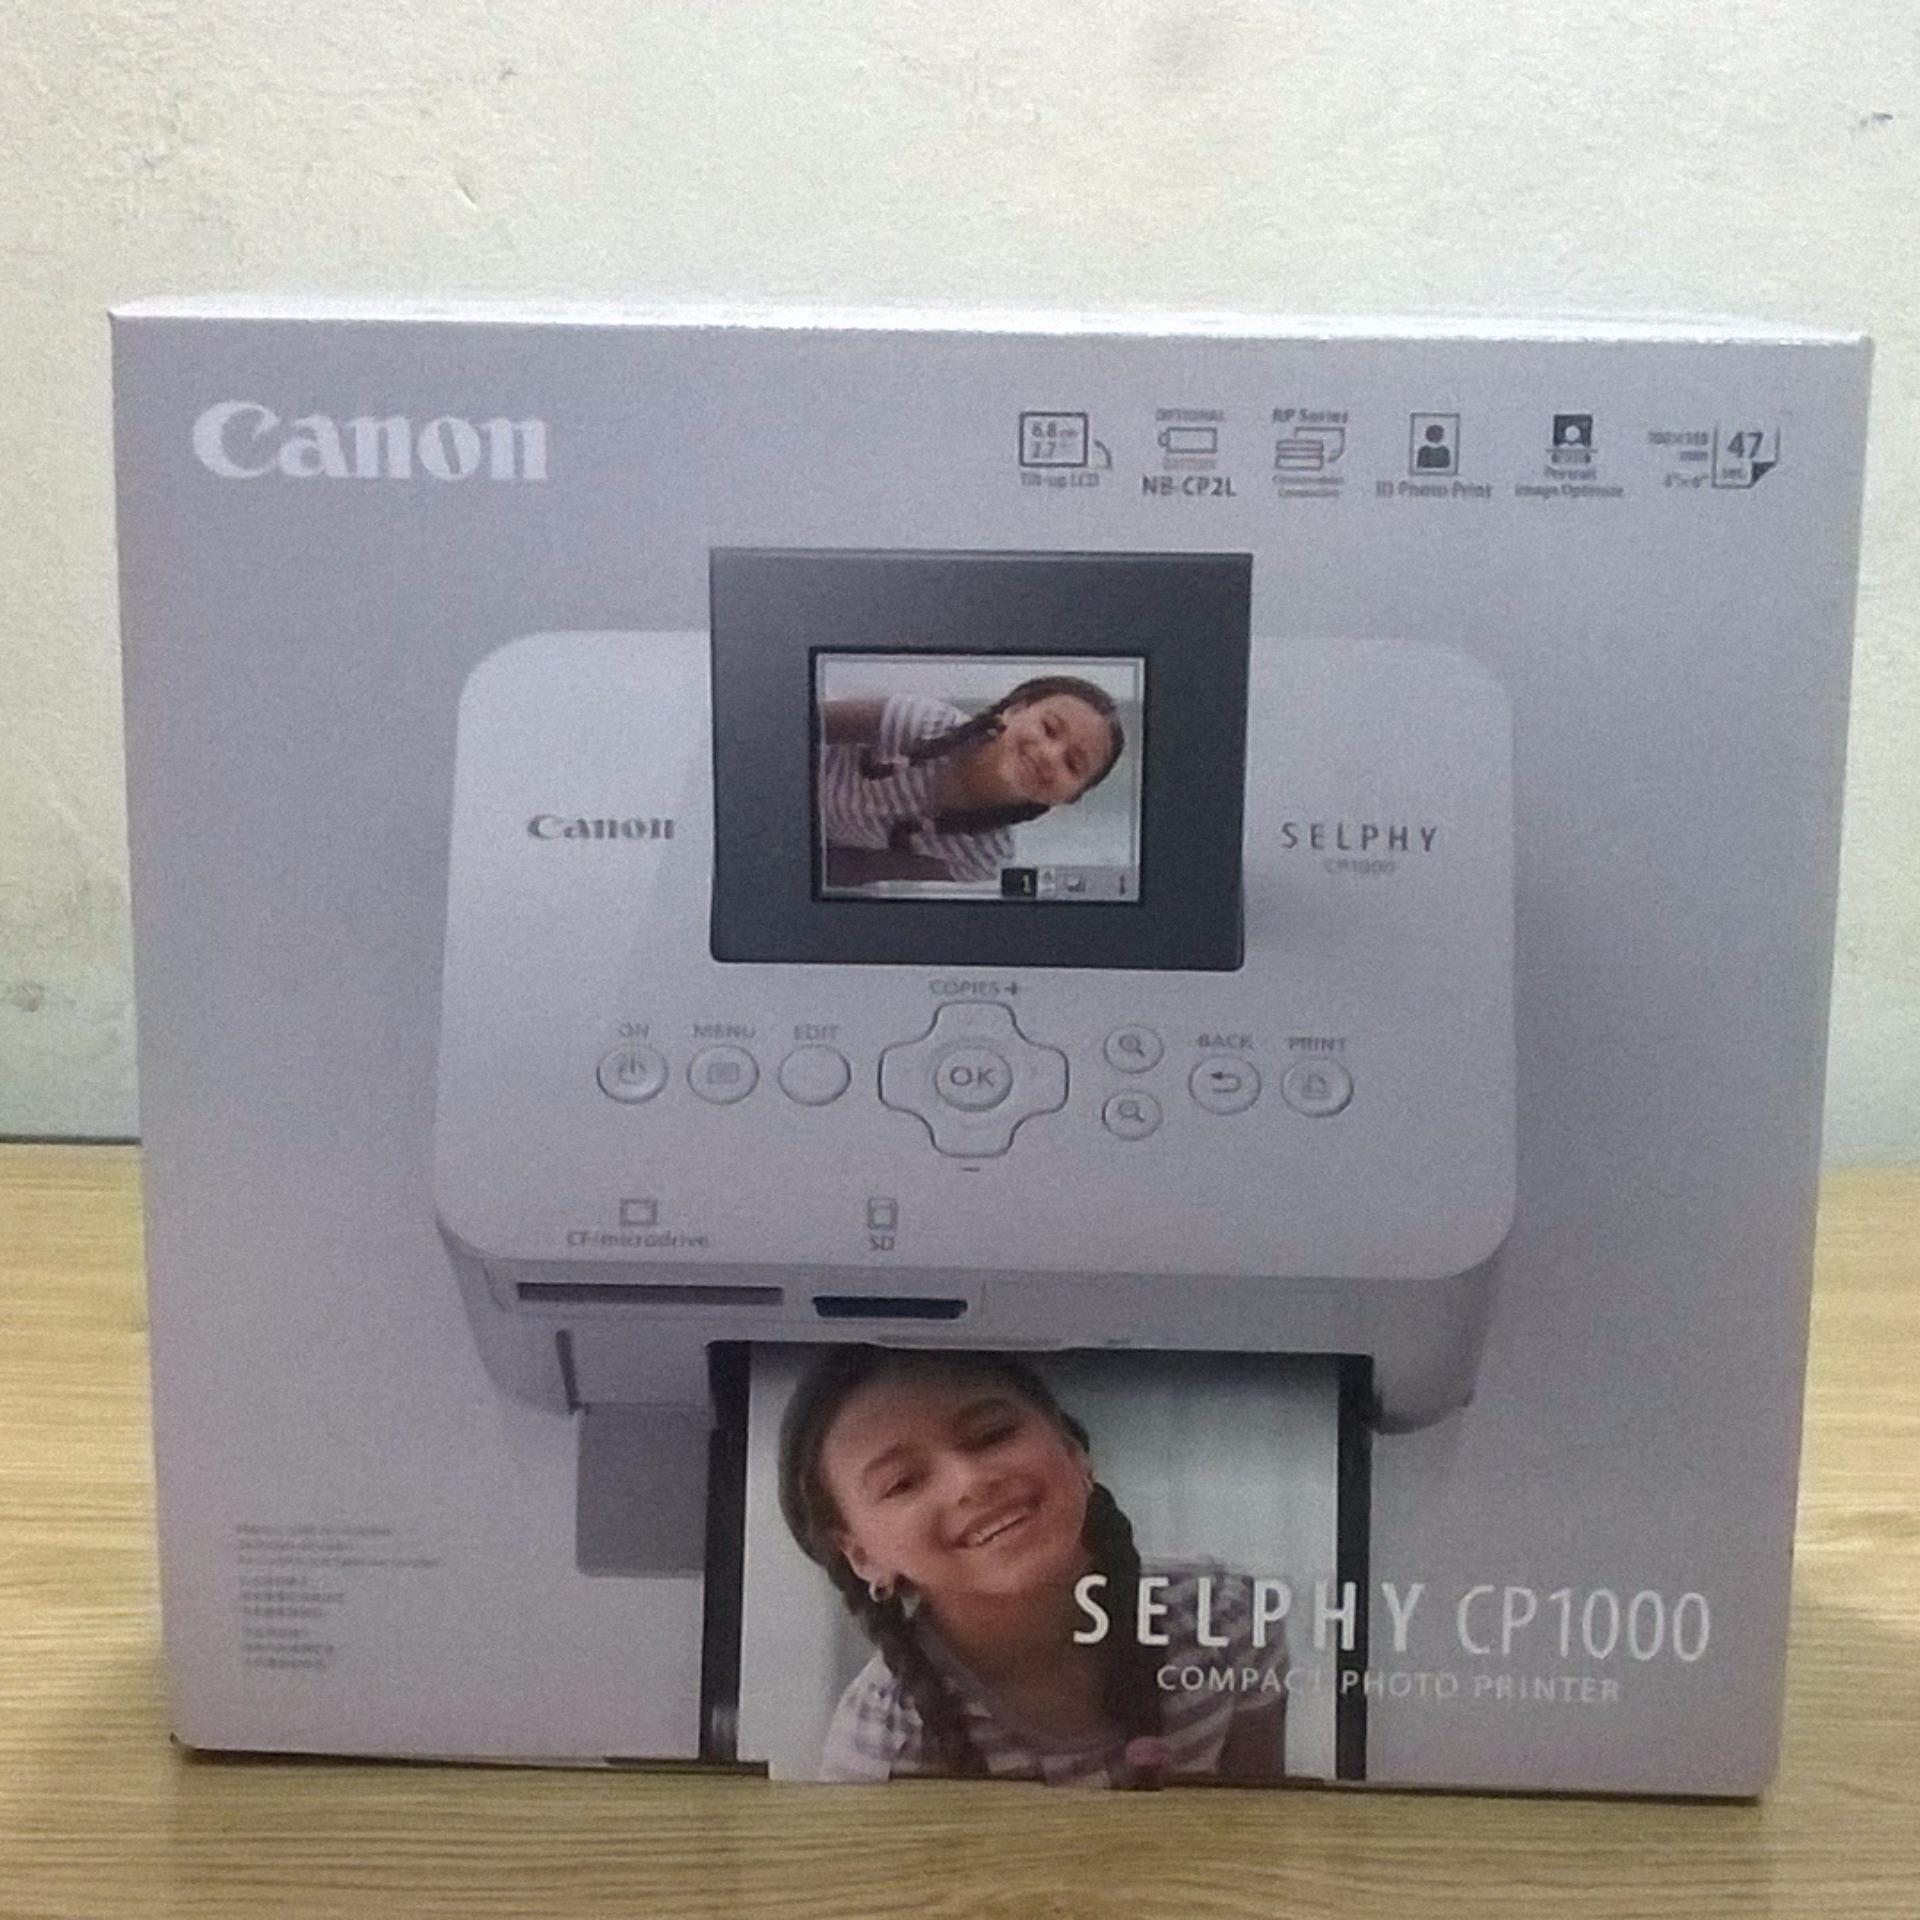 Mua My In Nh Th Canon Selphy Cp 1000 Hng Nhp Khu Mu Trng Cp1000 Compact Photo Printer White